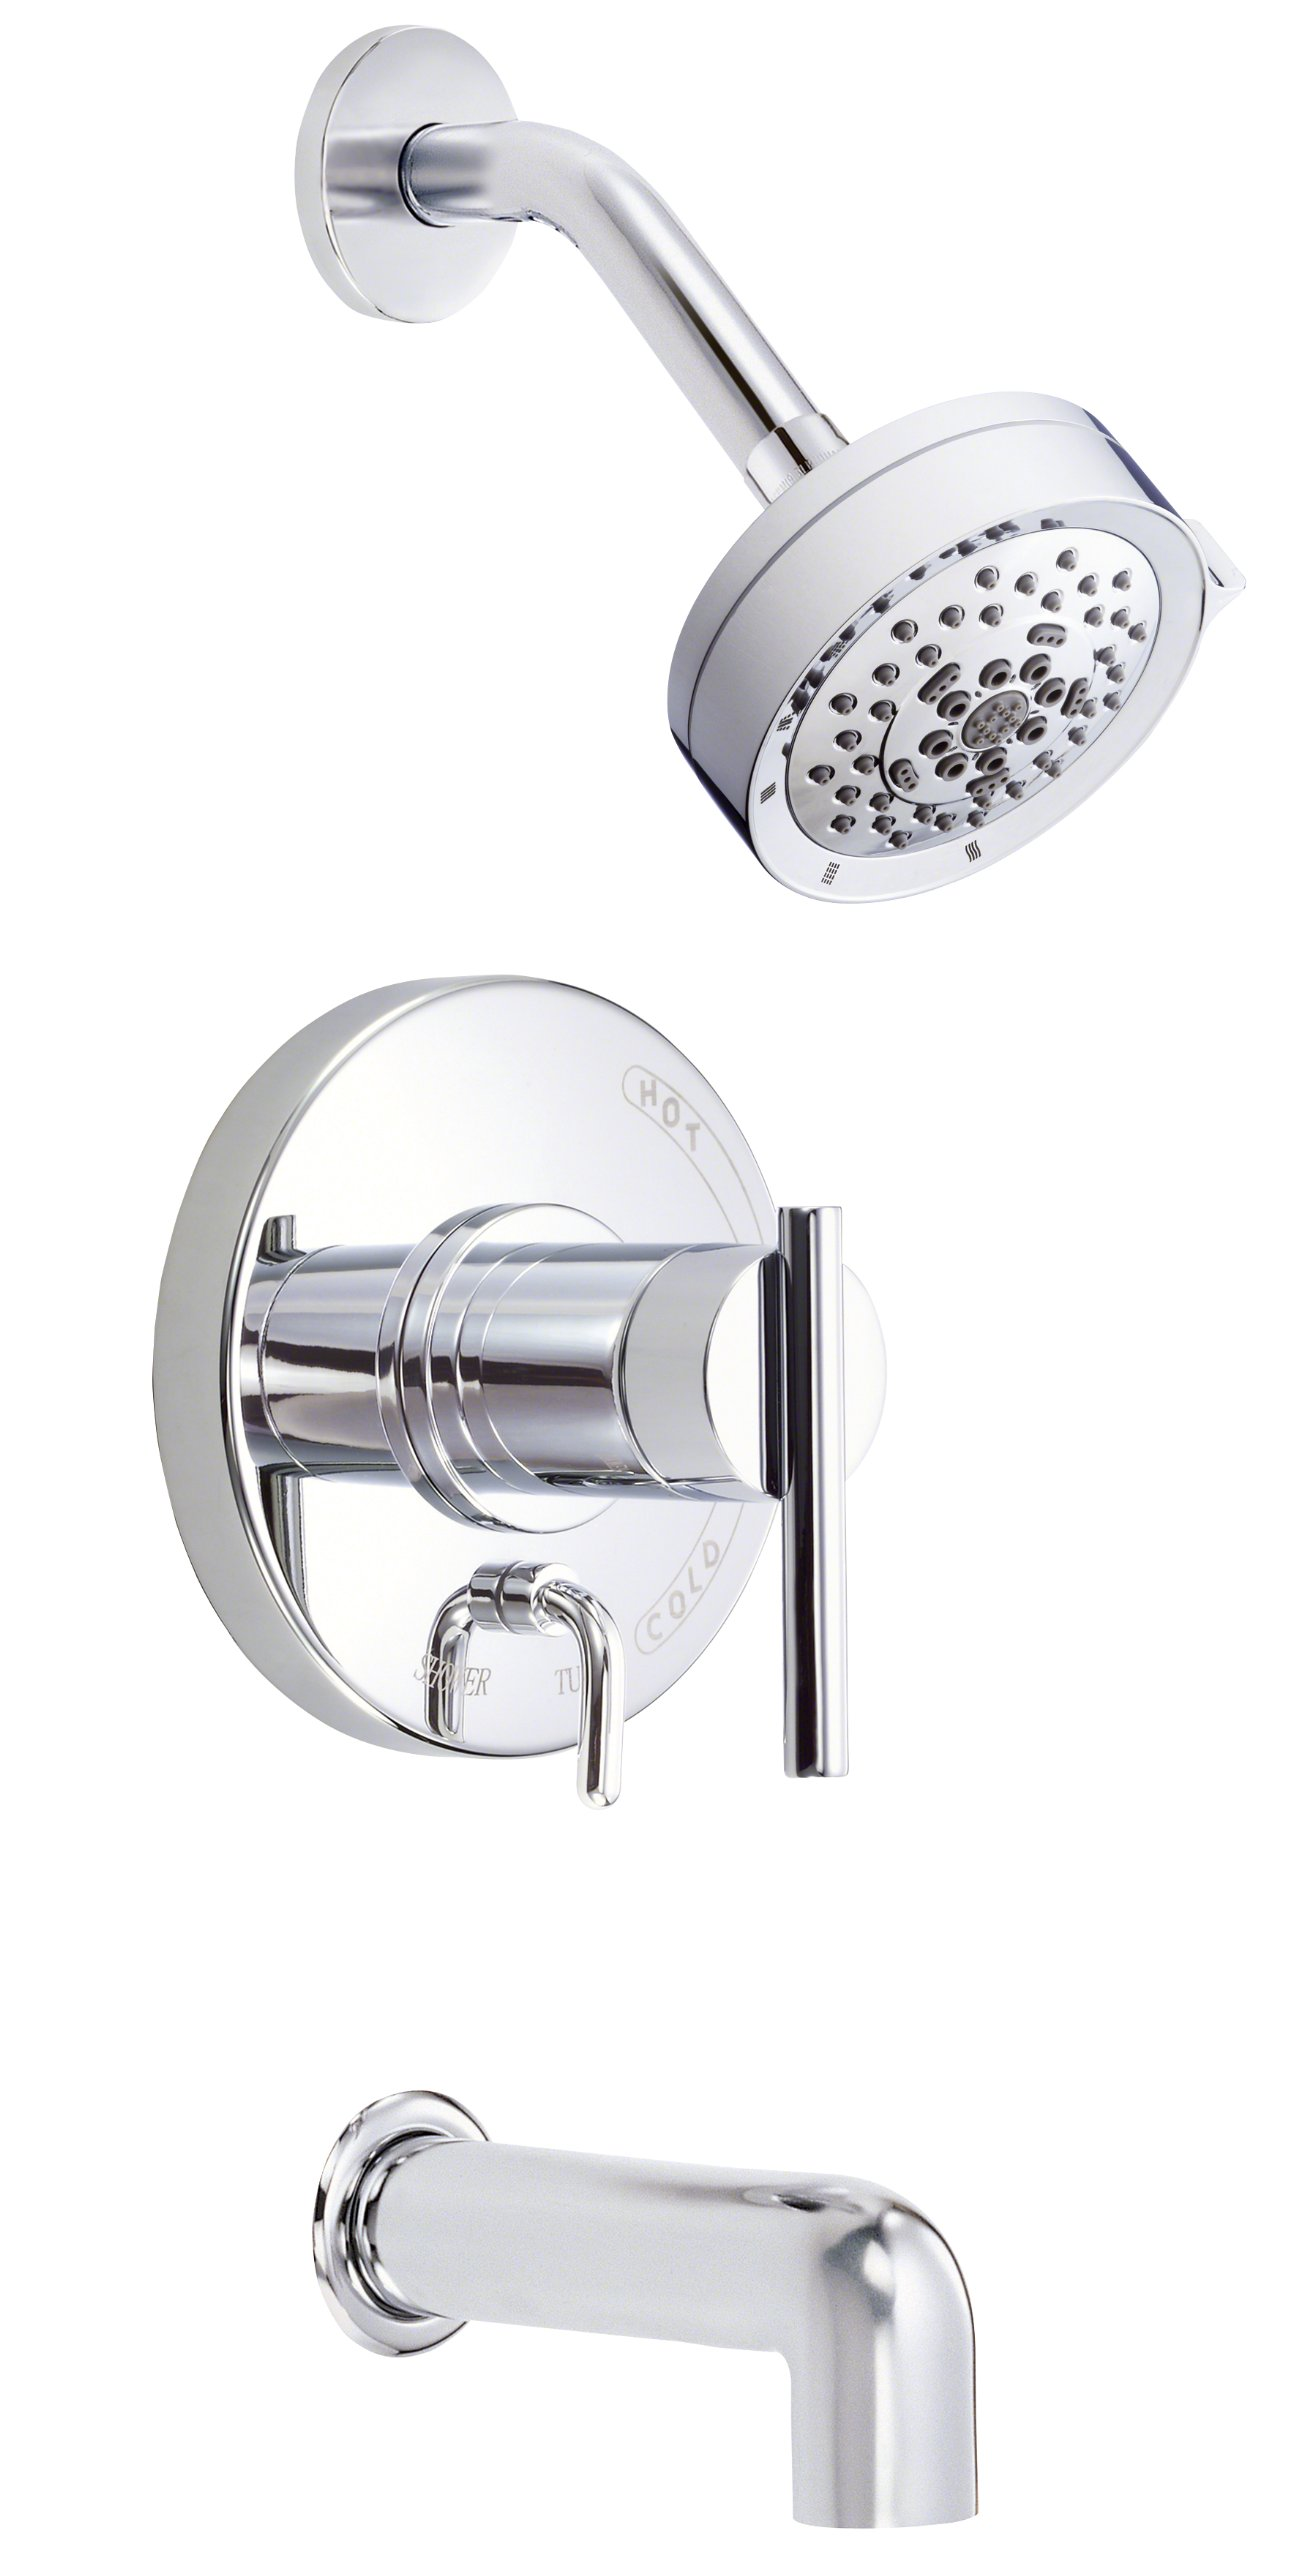 Danze D512058T Parma Single Handle Tub and Shower Trim Kit, 2.0 GPM, Valve Not Included, Chrome